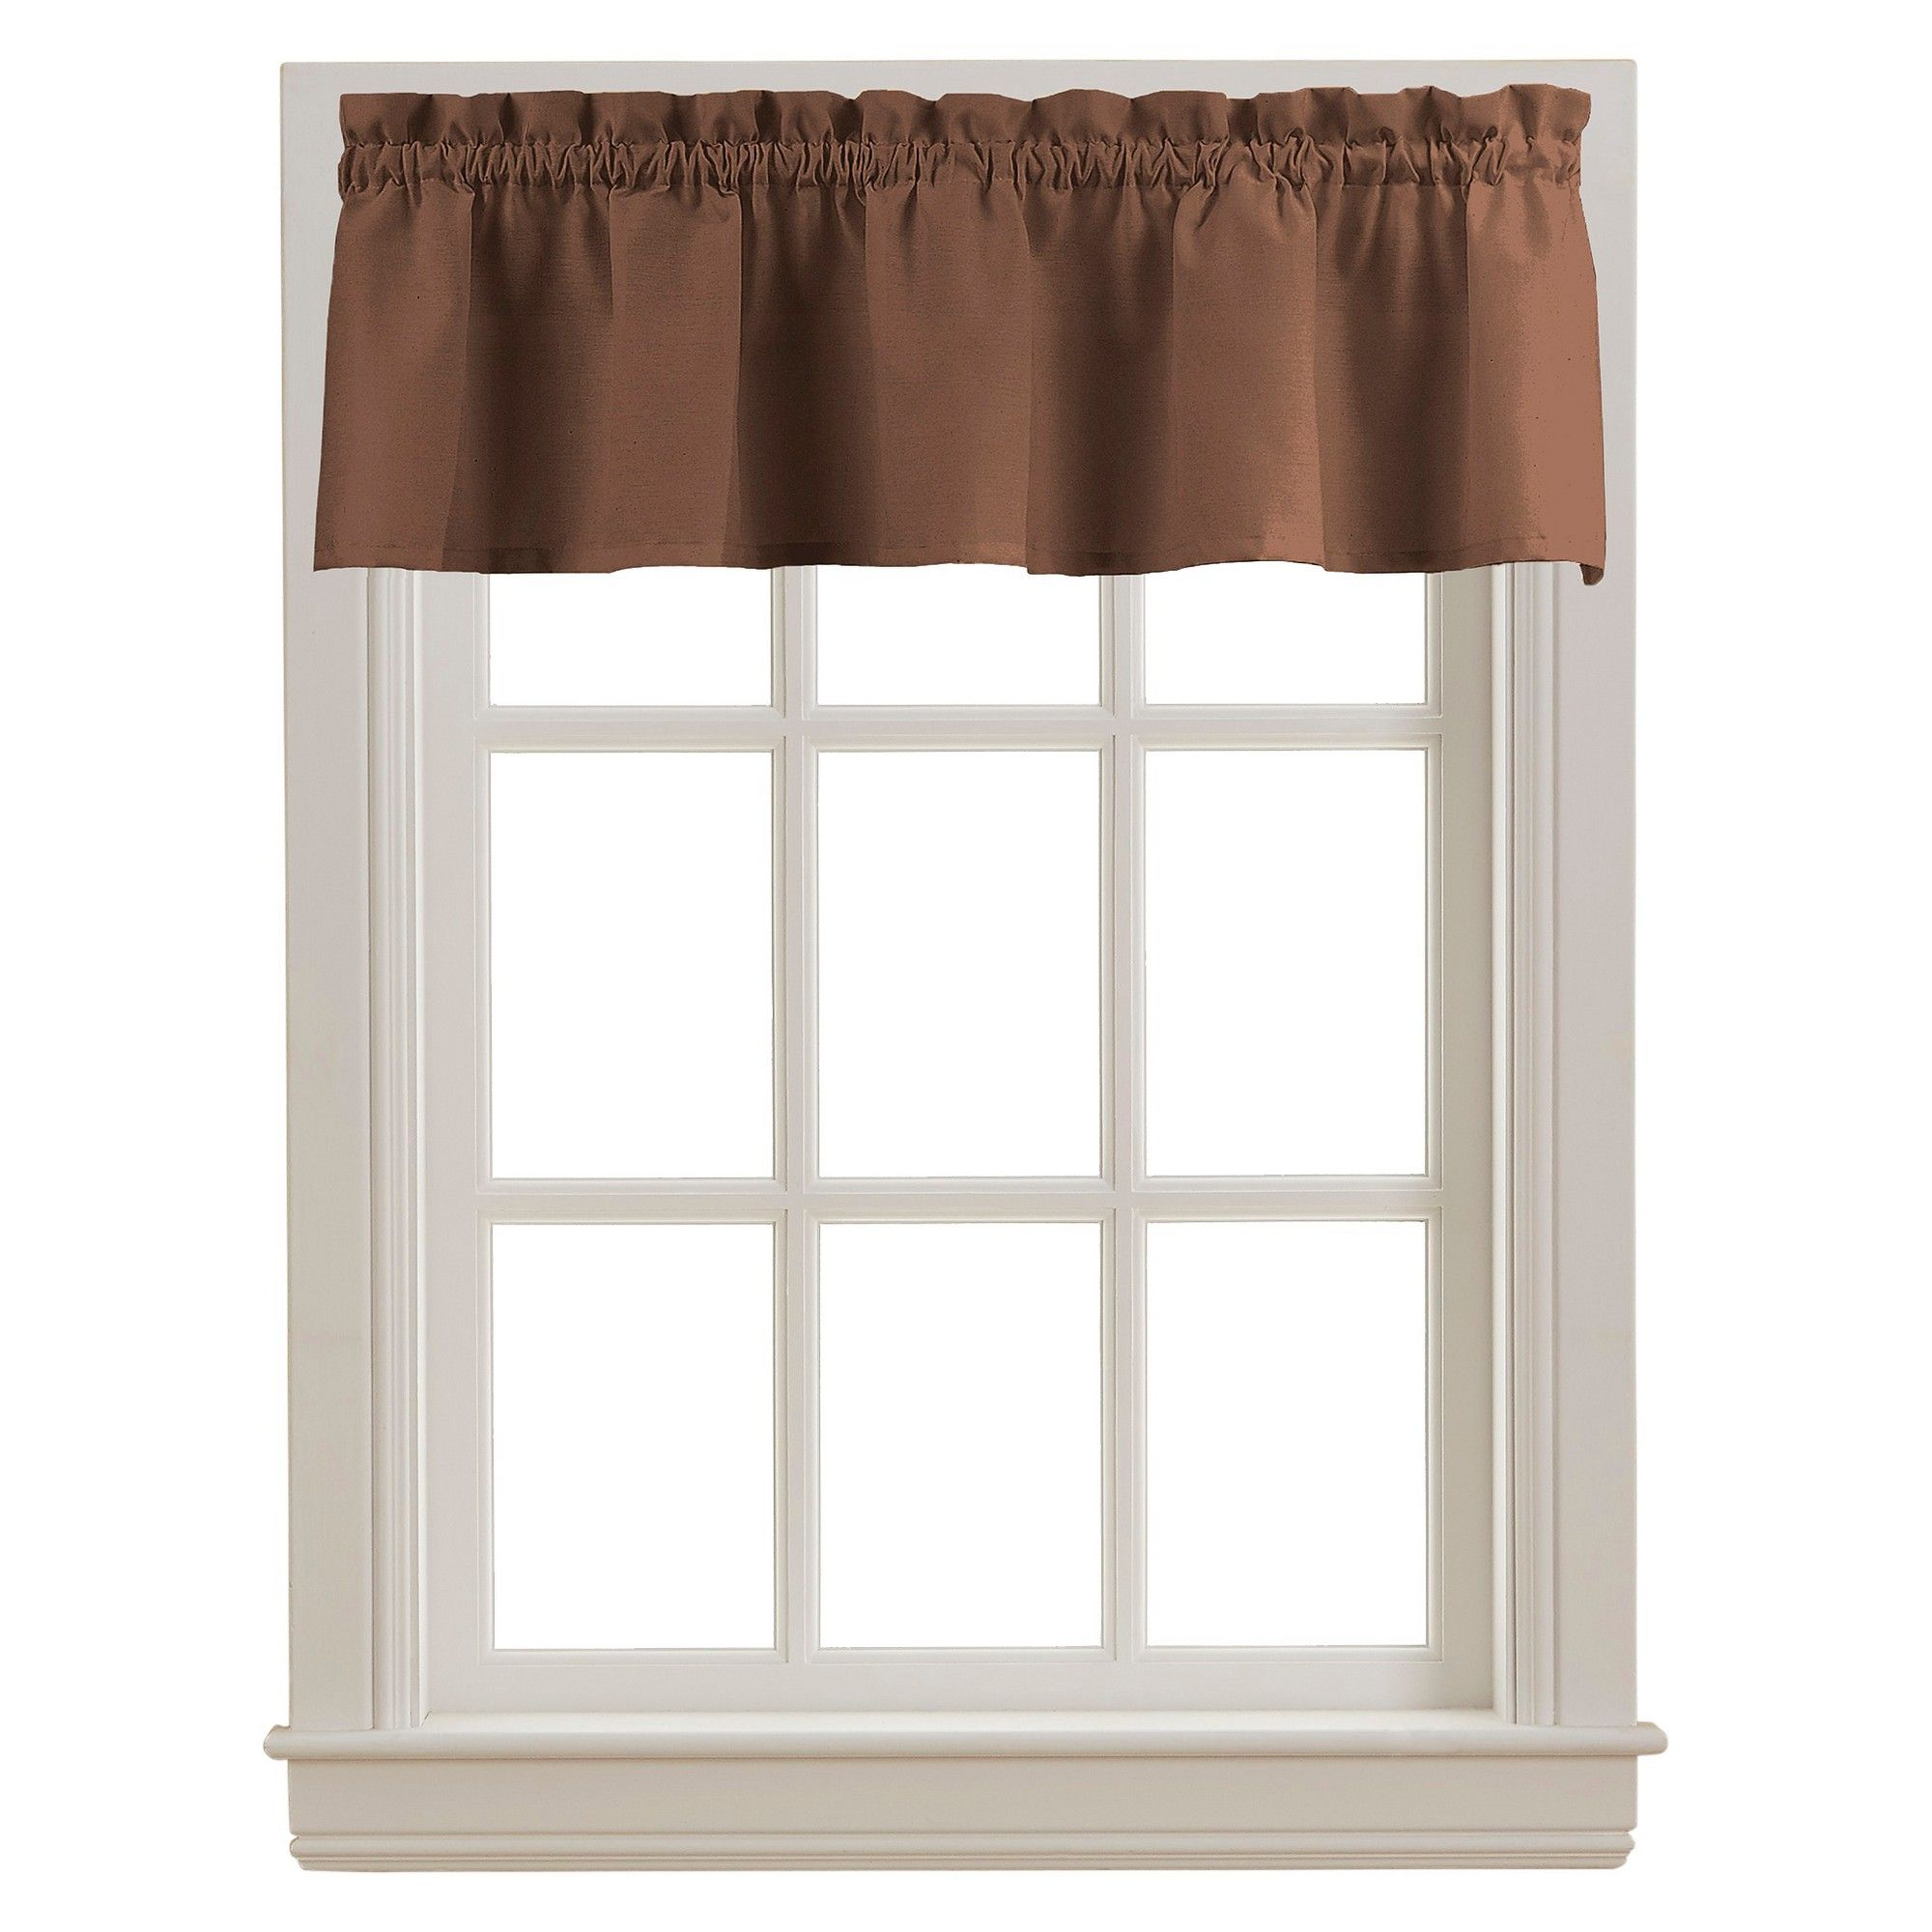 Peach Skin Valance Chocolate Brown 84 Chf Industries Valance Home Cafe Curtains